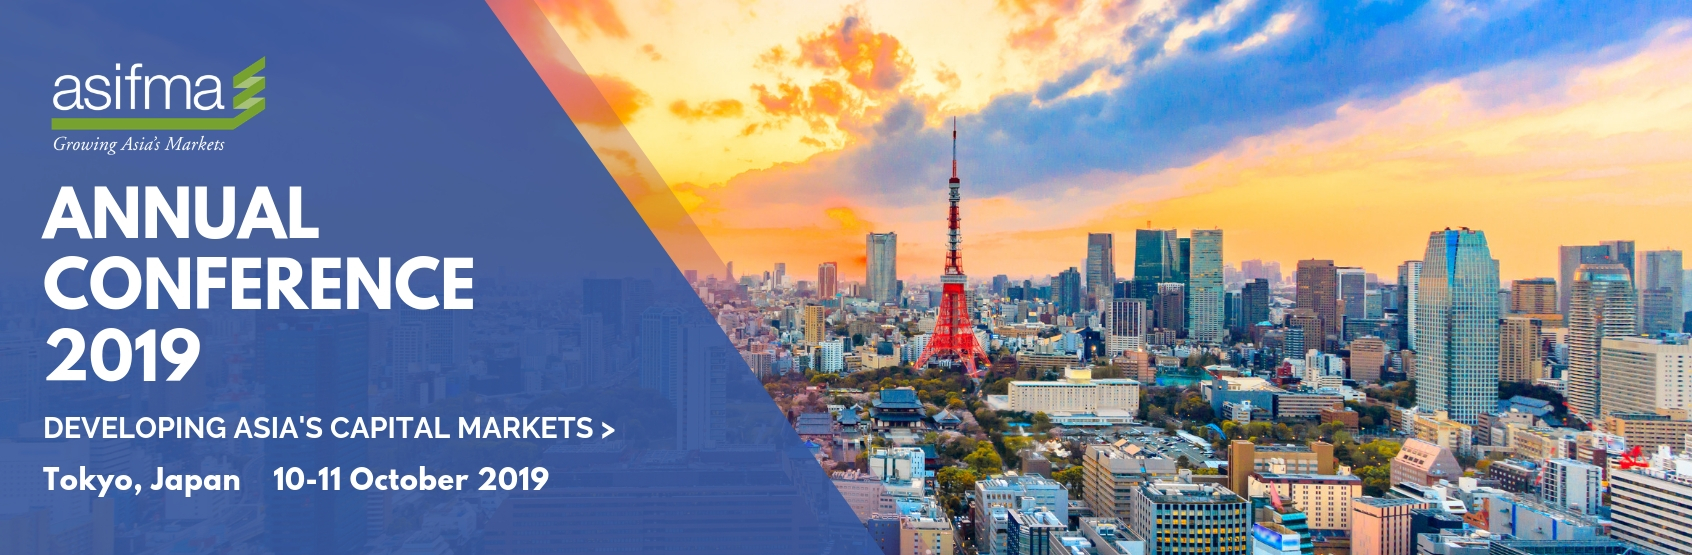 ASIFMA Annual Conference 2019: Developing Asia's Capital